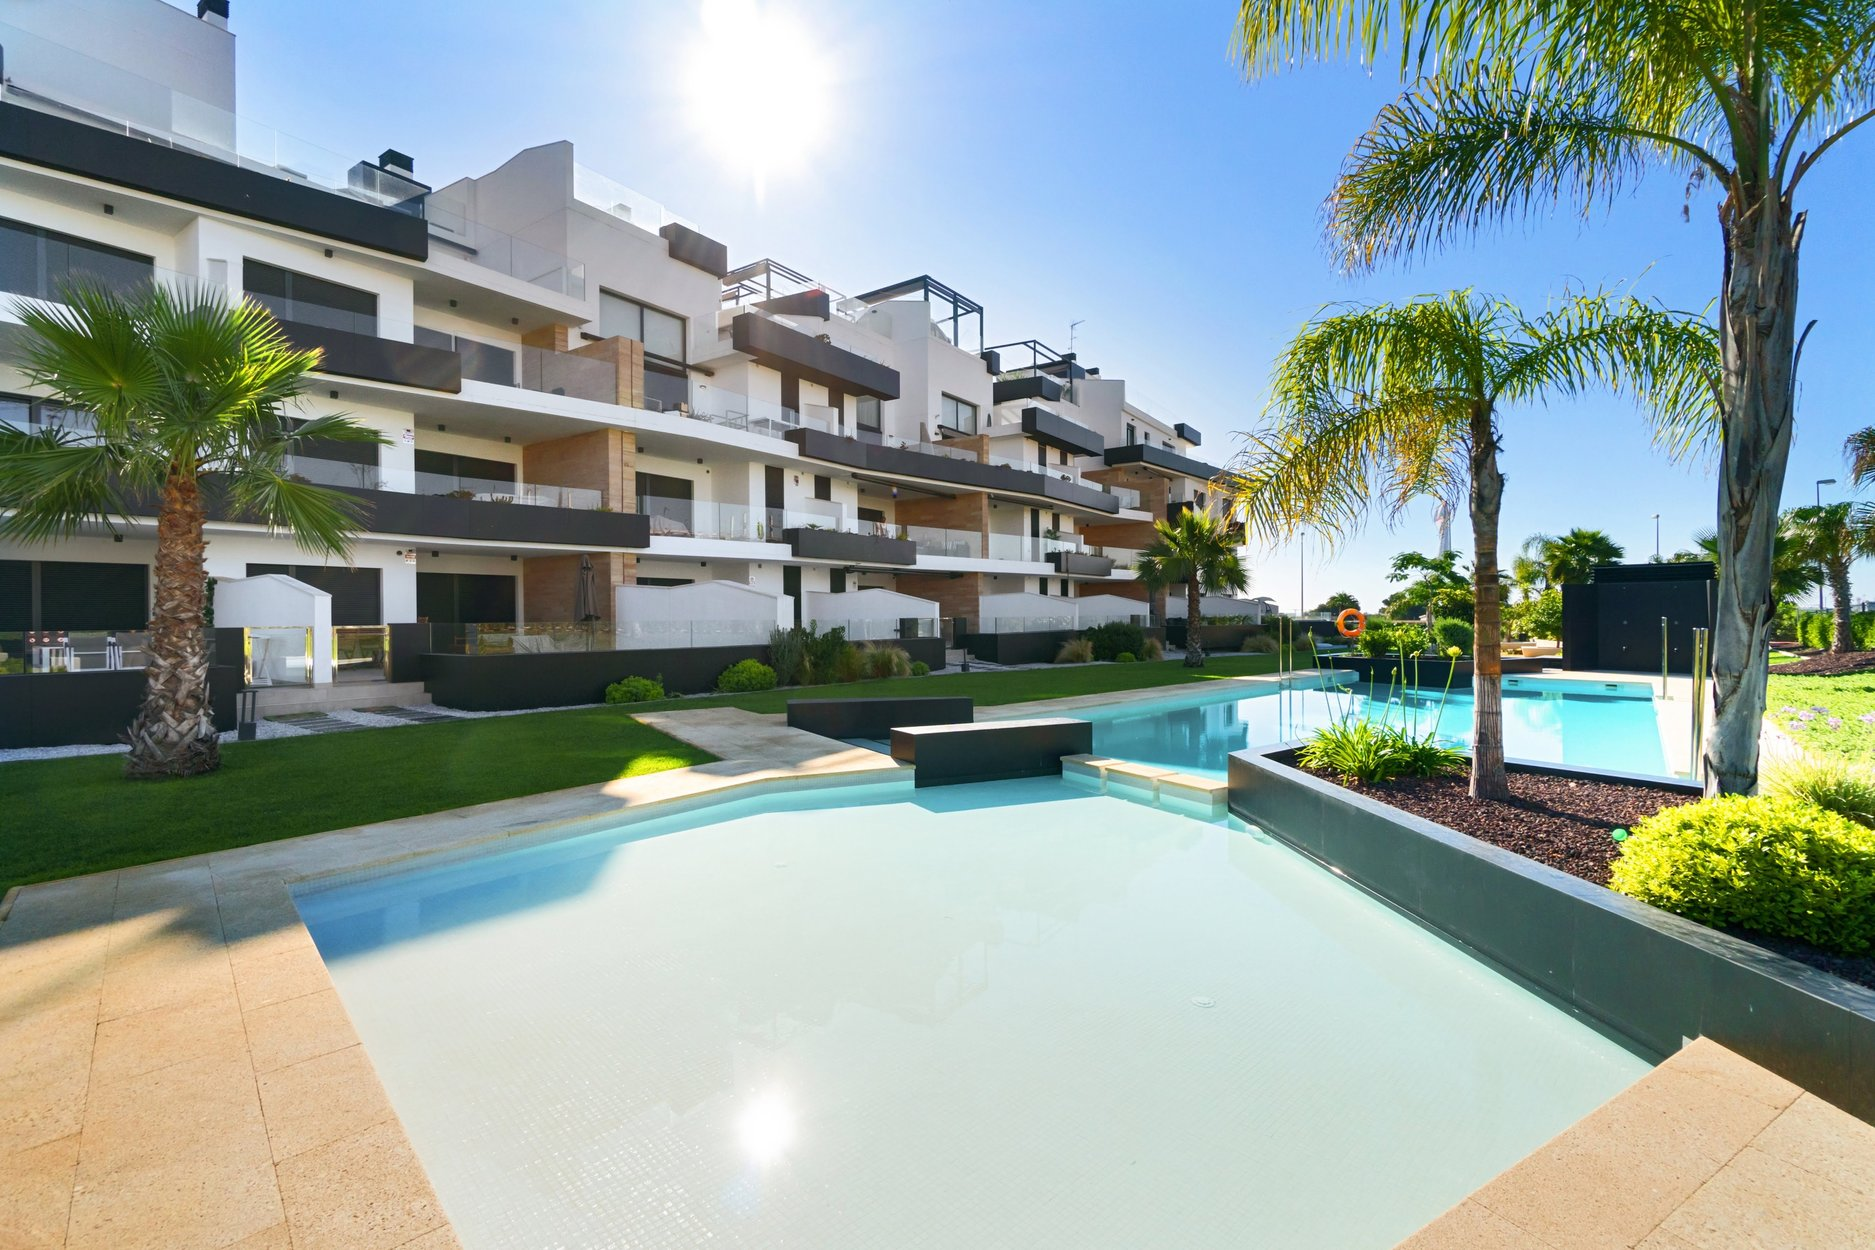 Apartment for sale in Los Dolses - Costa Blanca